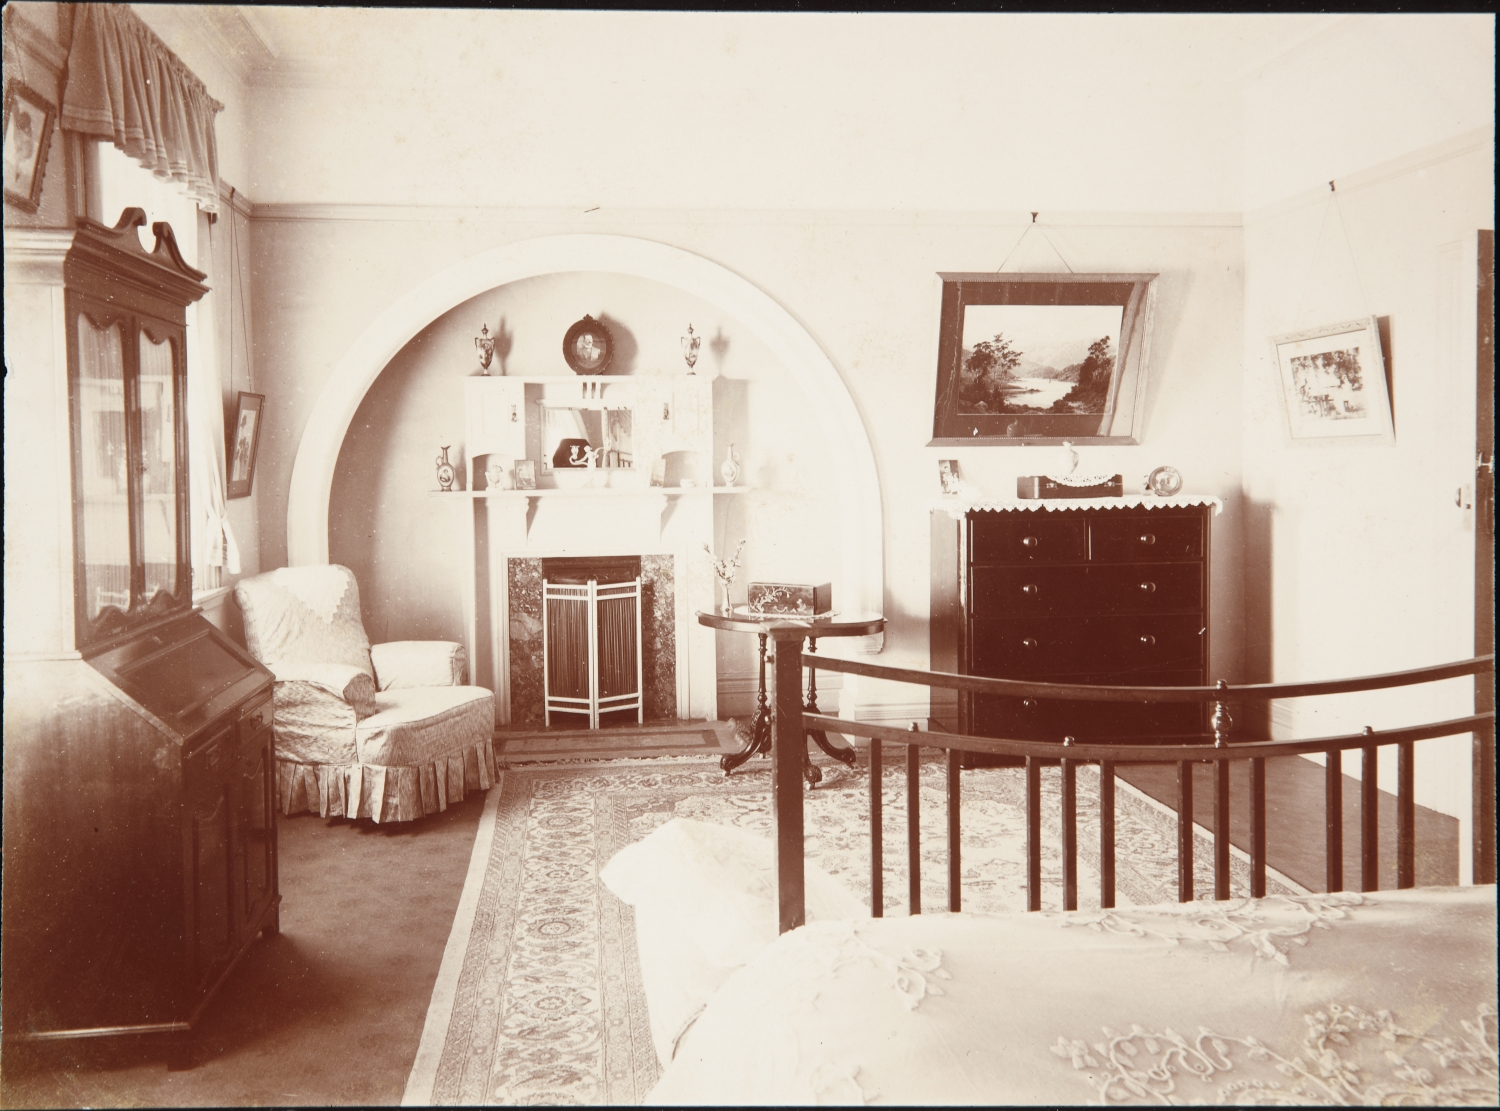 Sepia toned photo of large room with foot of bed visible and fireplace at far end of room.